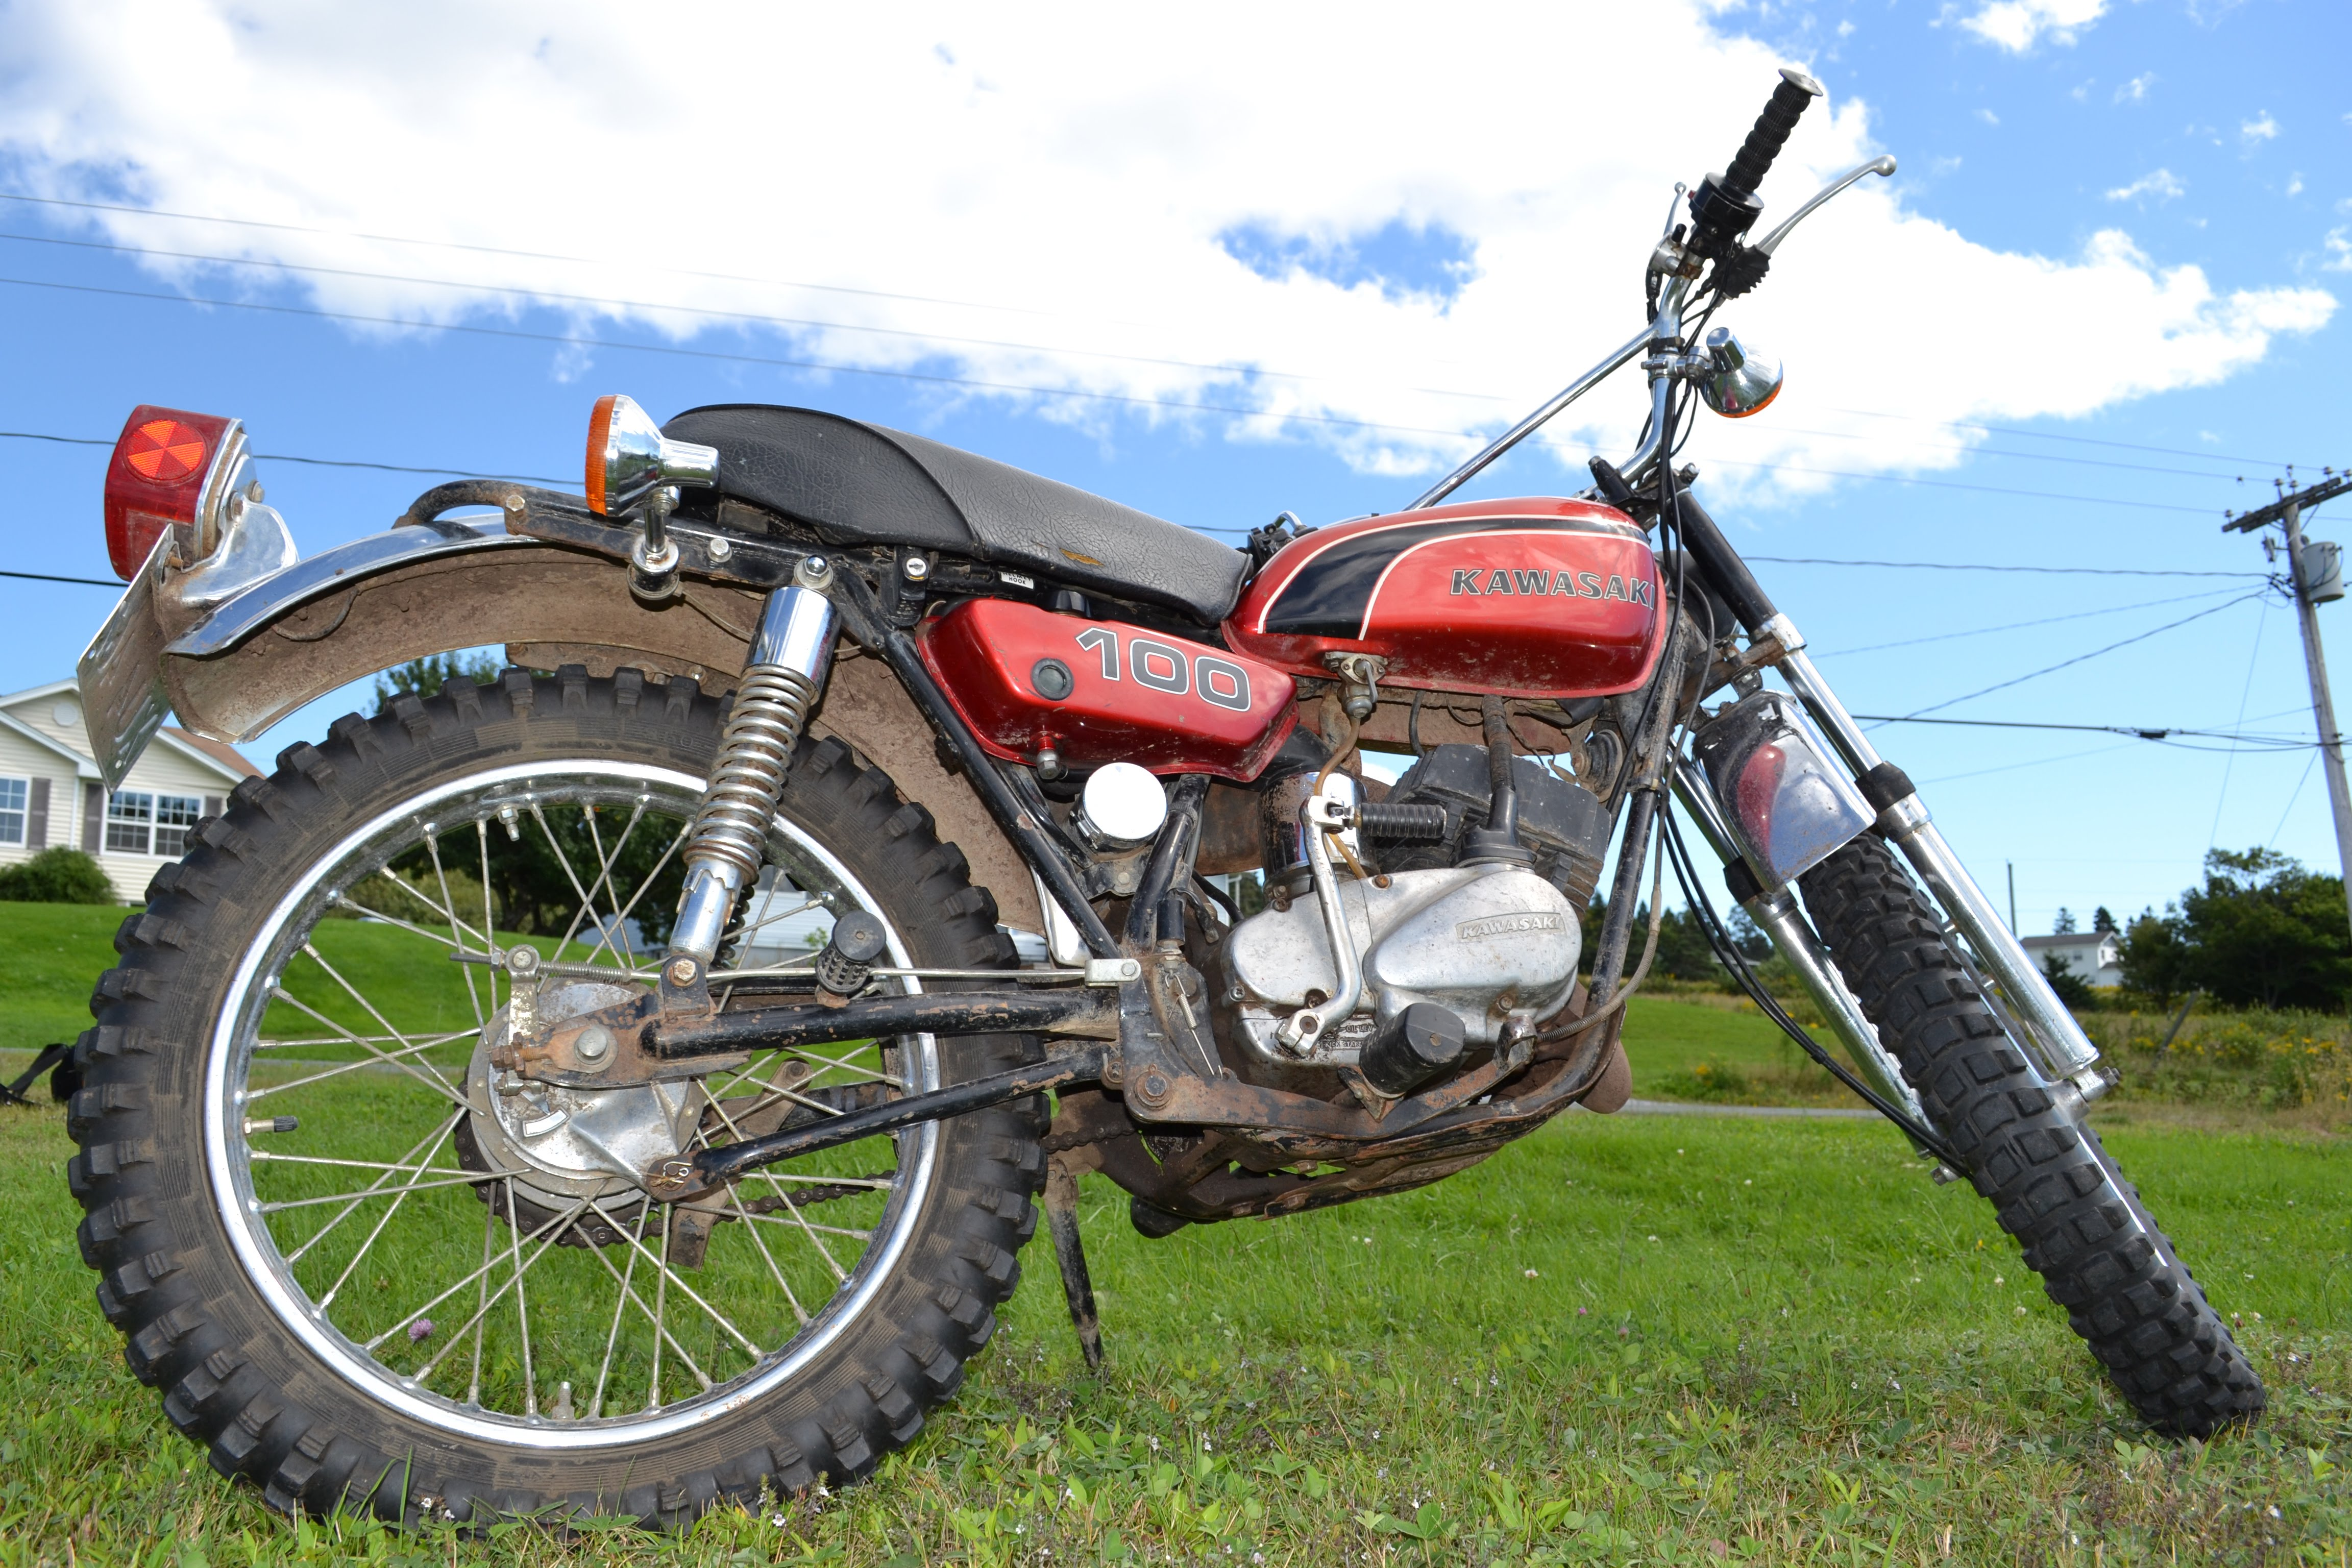 1974 Kawasaki F7 Wiring Diagrams Trusted 1978 Kz1000 Diagram Free Picture G4tr Schematic Charging Circuit For 175